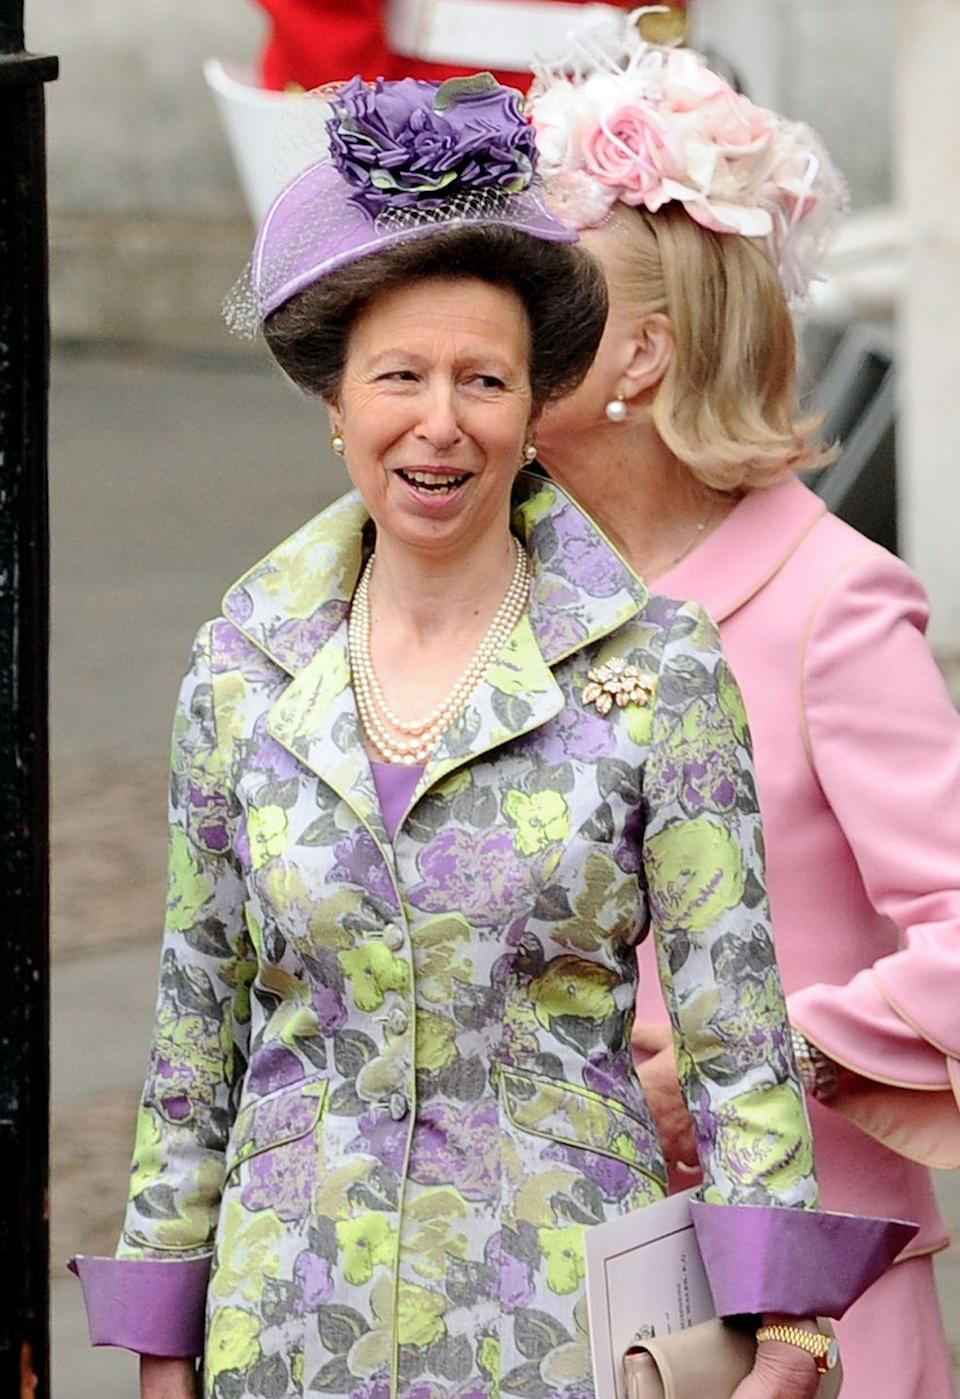 <p>Princess Anne celebrates the wedding of Prince William and Duchess Kate in a purple floral design.</p>